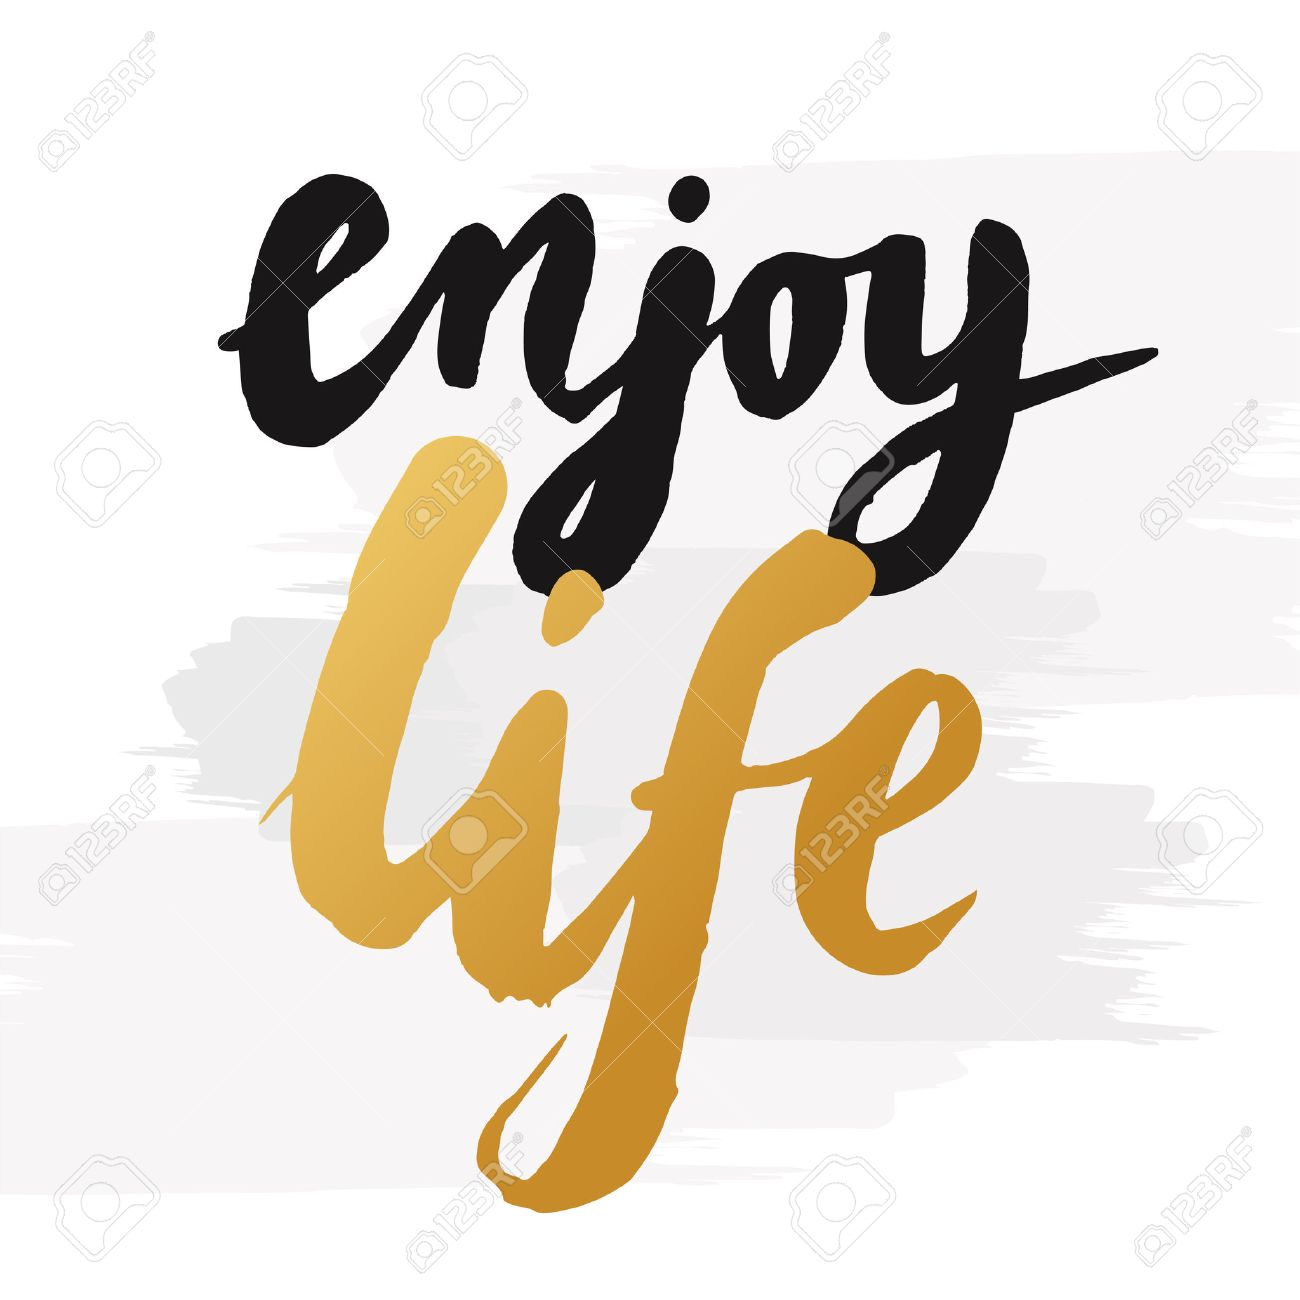 """Hand-drawn word """"enjoy life"""" in gold color. Inspirational quote handwritten with golden ink. Custom lettering for posters, t-shirts and greeting cards. Vector calligraphy isolated on white background with brush effect - 52952962"""